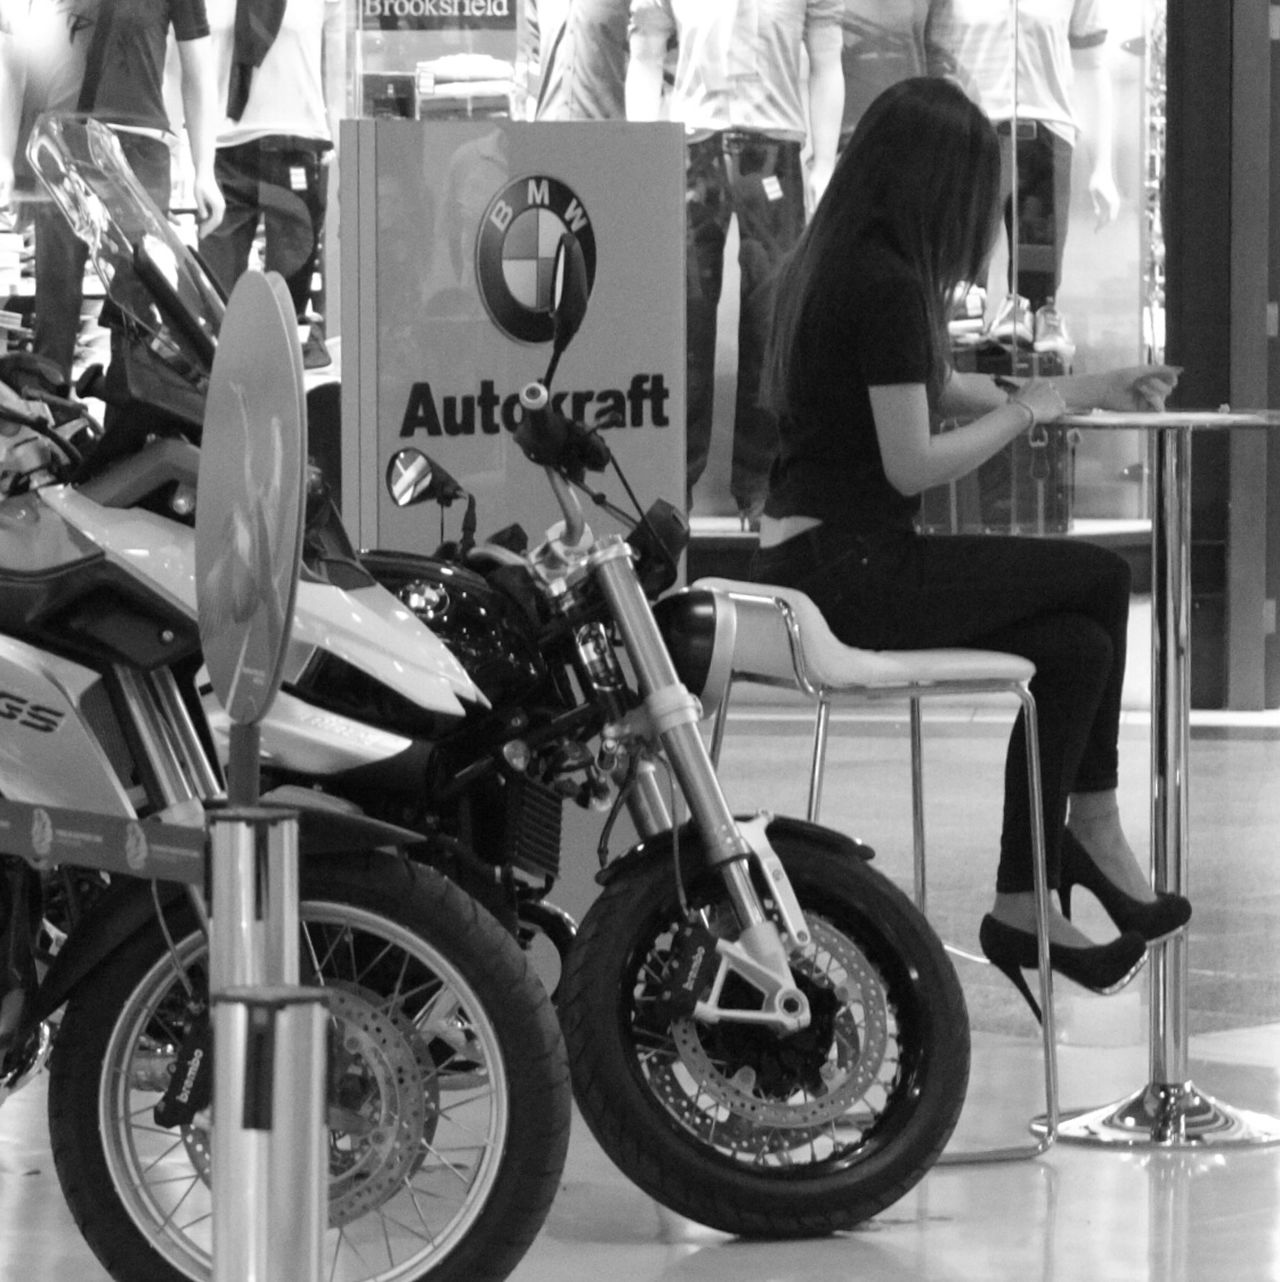 Streetphotography Bmw Motorcycle